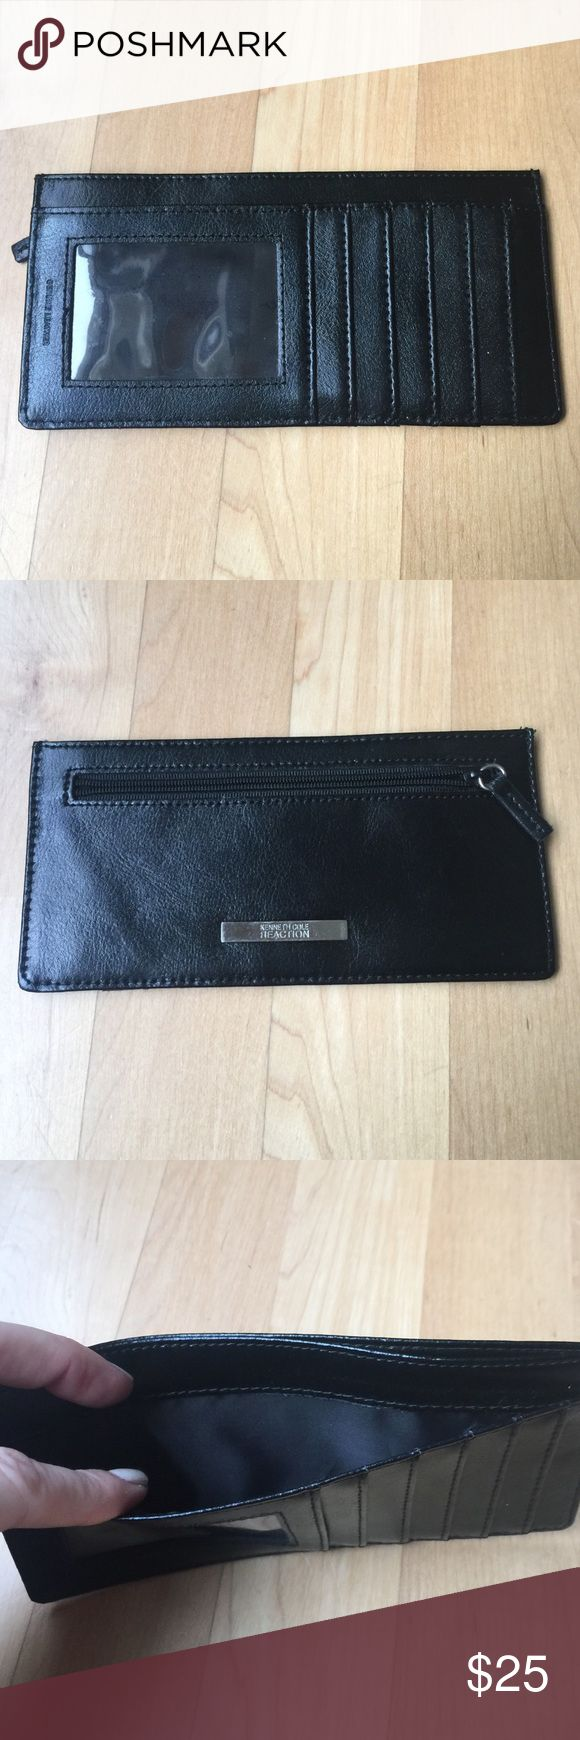 Kenneth Cole reaction card holder. Kenneth Cole reaction card holder. Black. Zipper pouch for coin. 5 card slots plus Id  slot. Pouch for cash. Excellent  condition. No trades Kenneth Cole Reaction Accessories Key & Card Holders